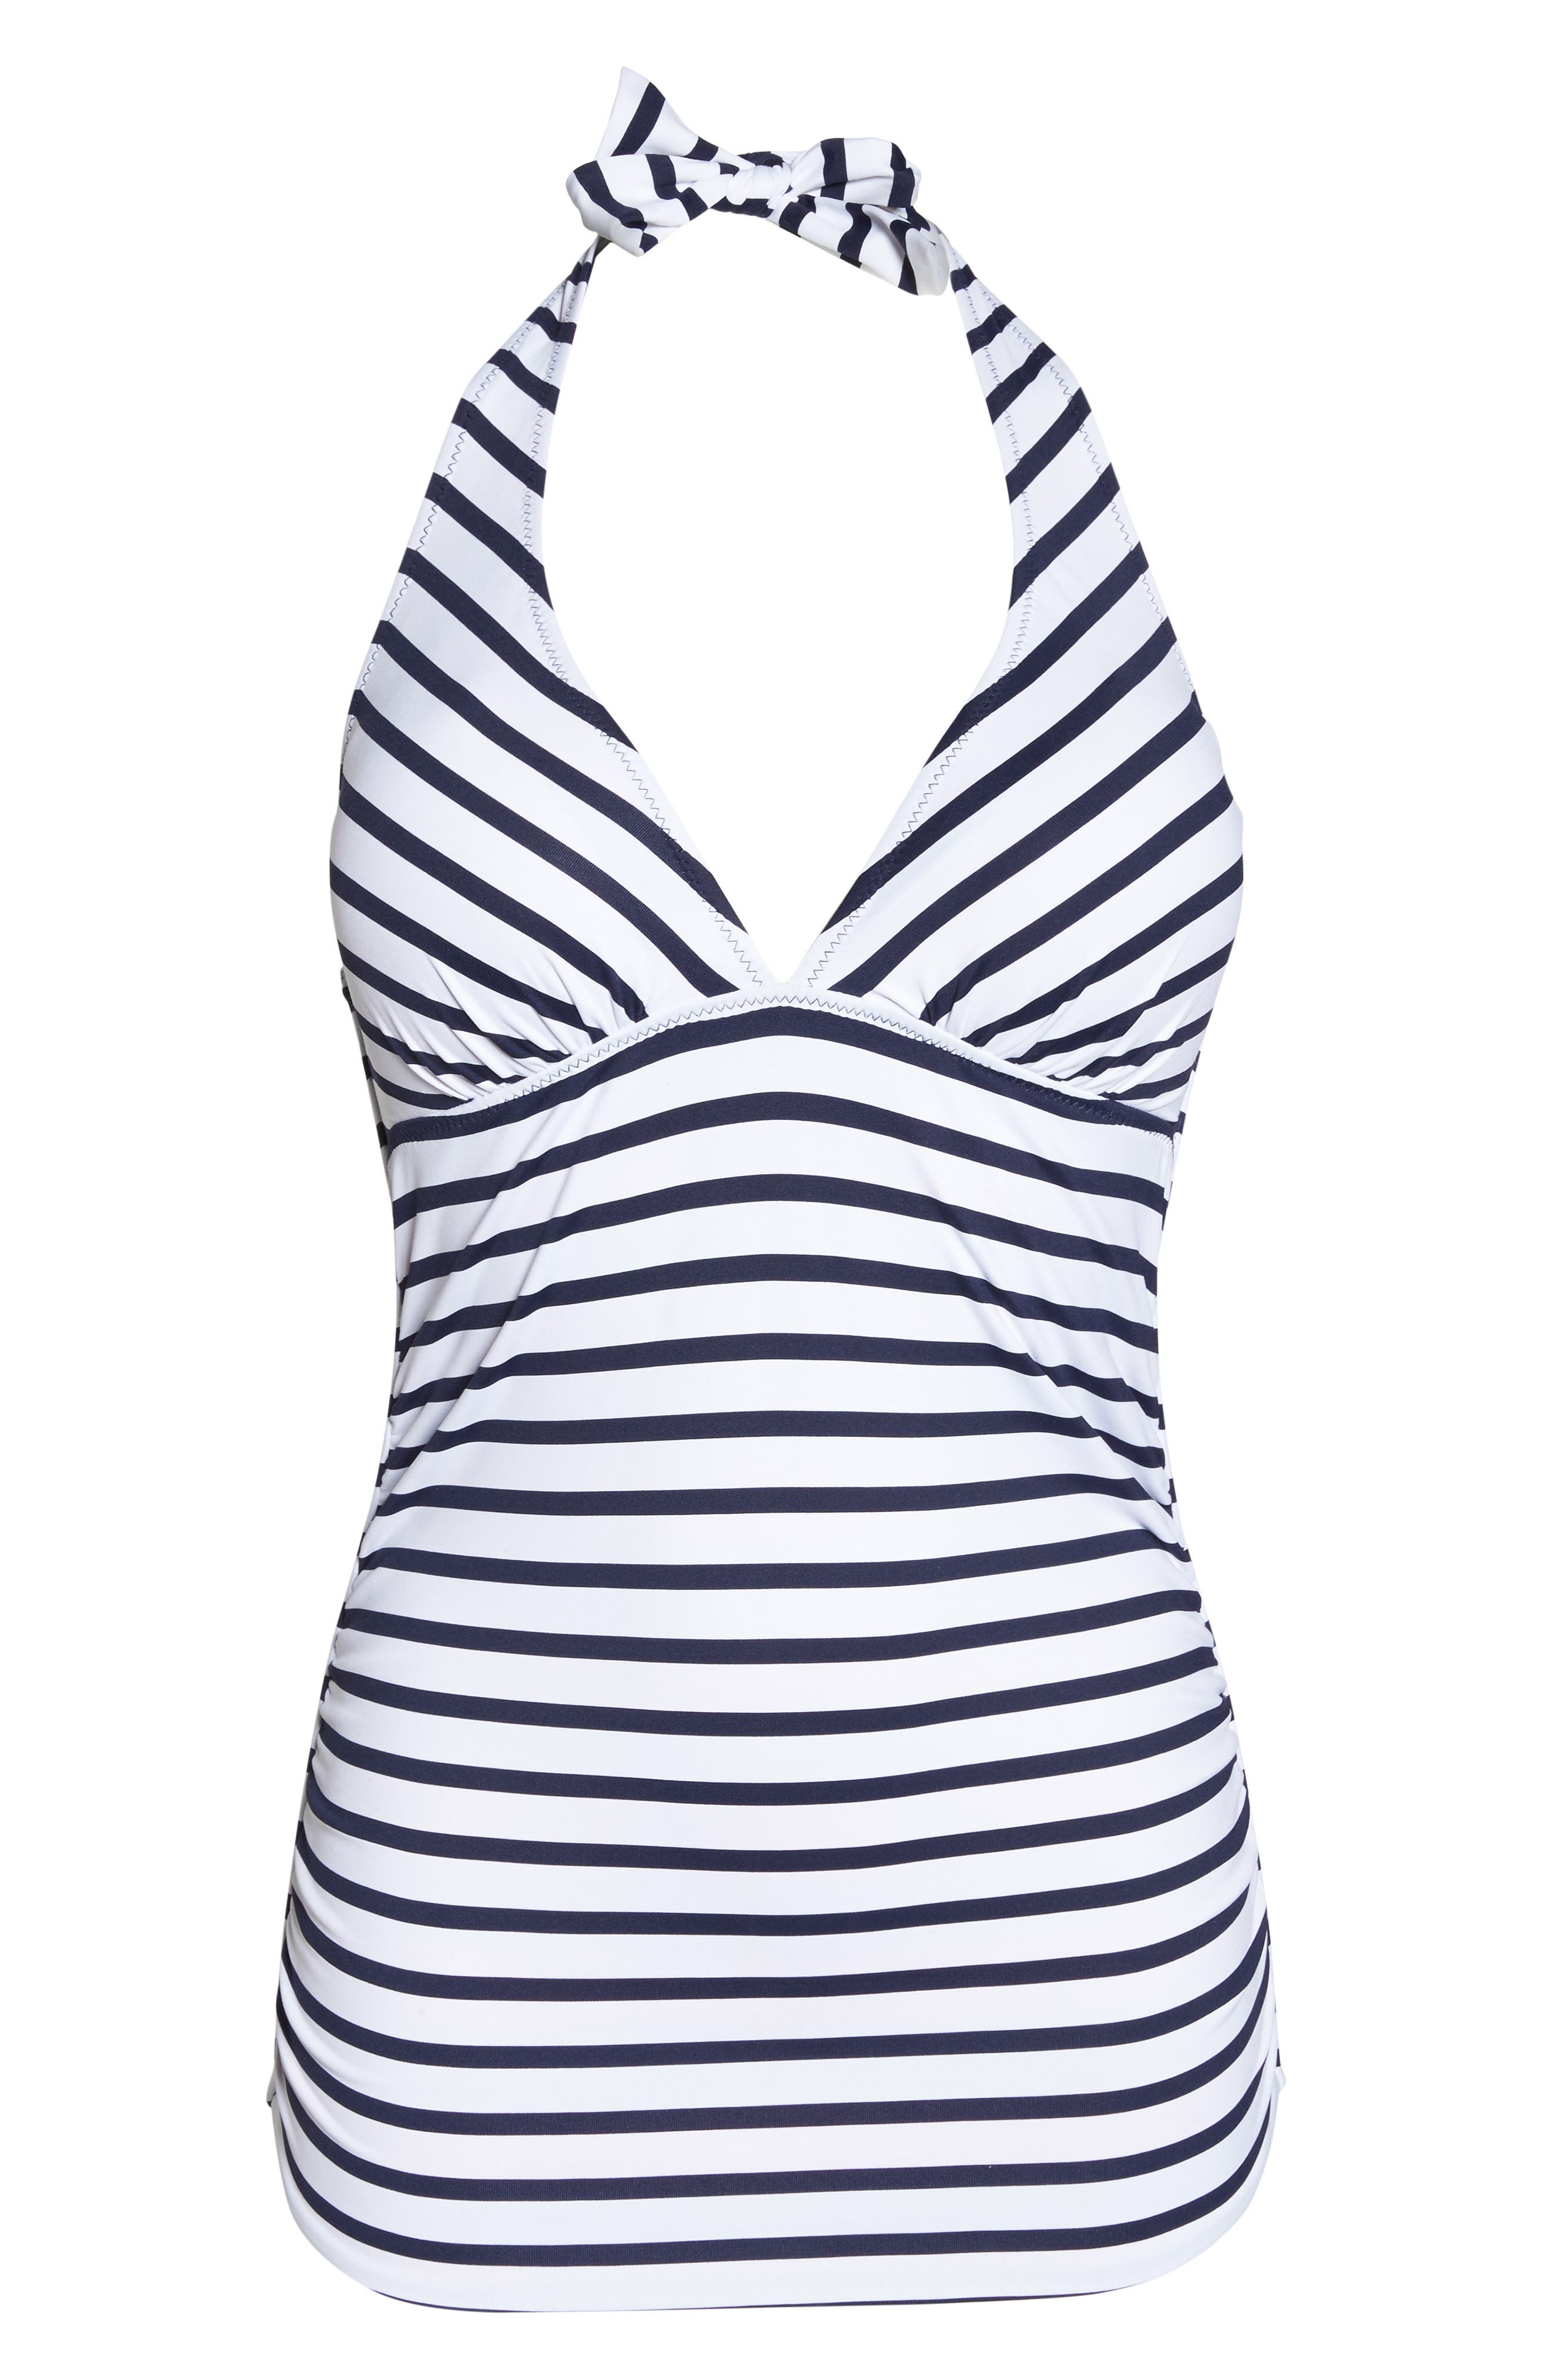 Channel Surfing Reversible Halter Tankini Top,                             Alternate thumbnail 7, color,                             400